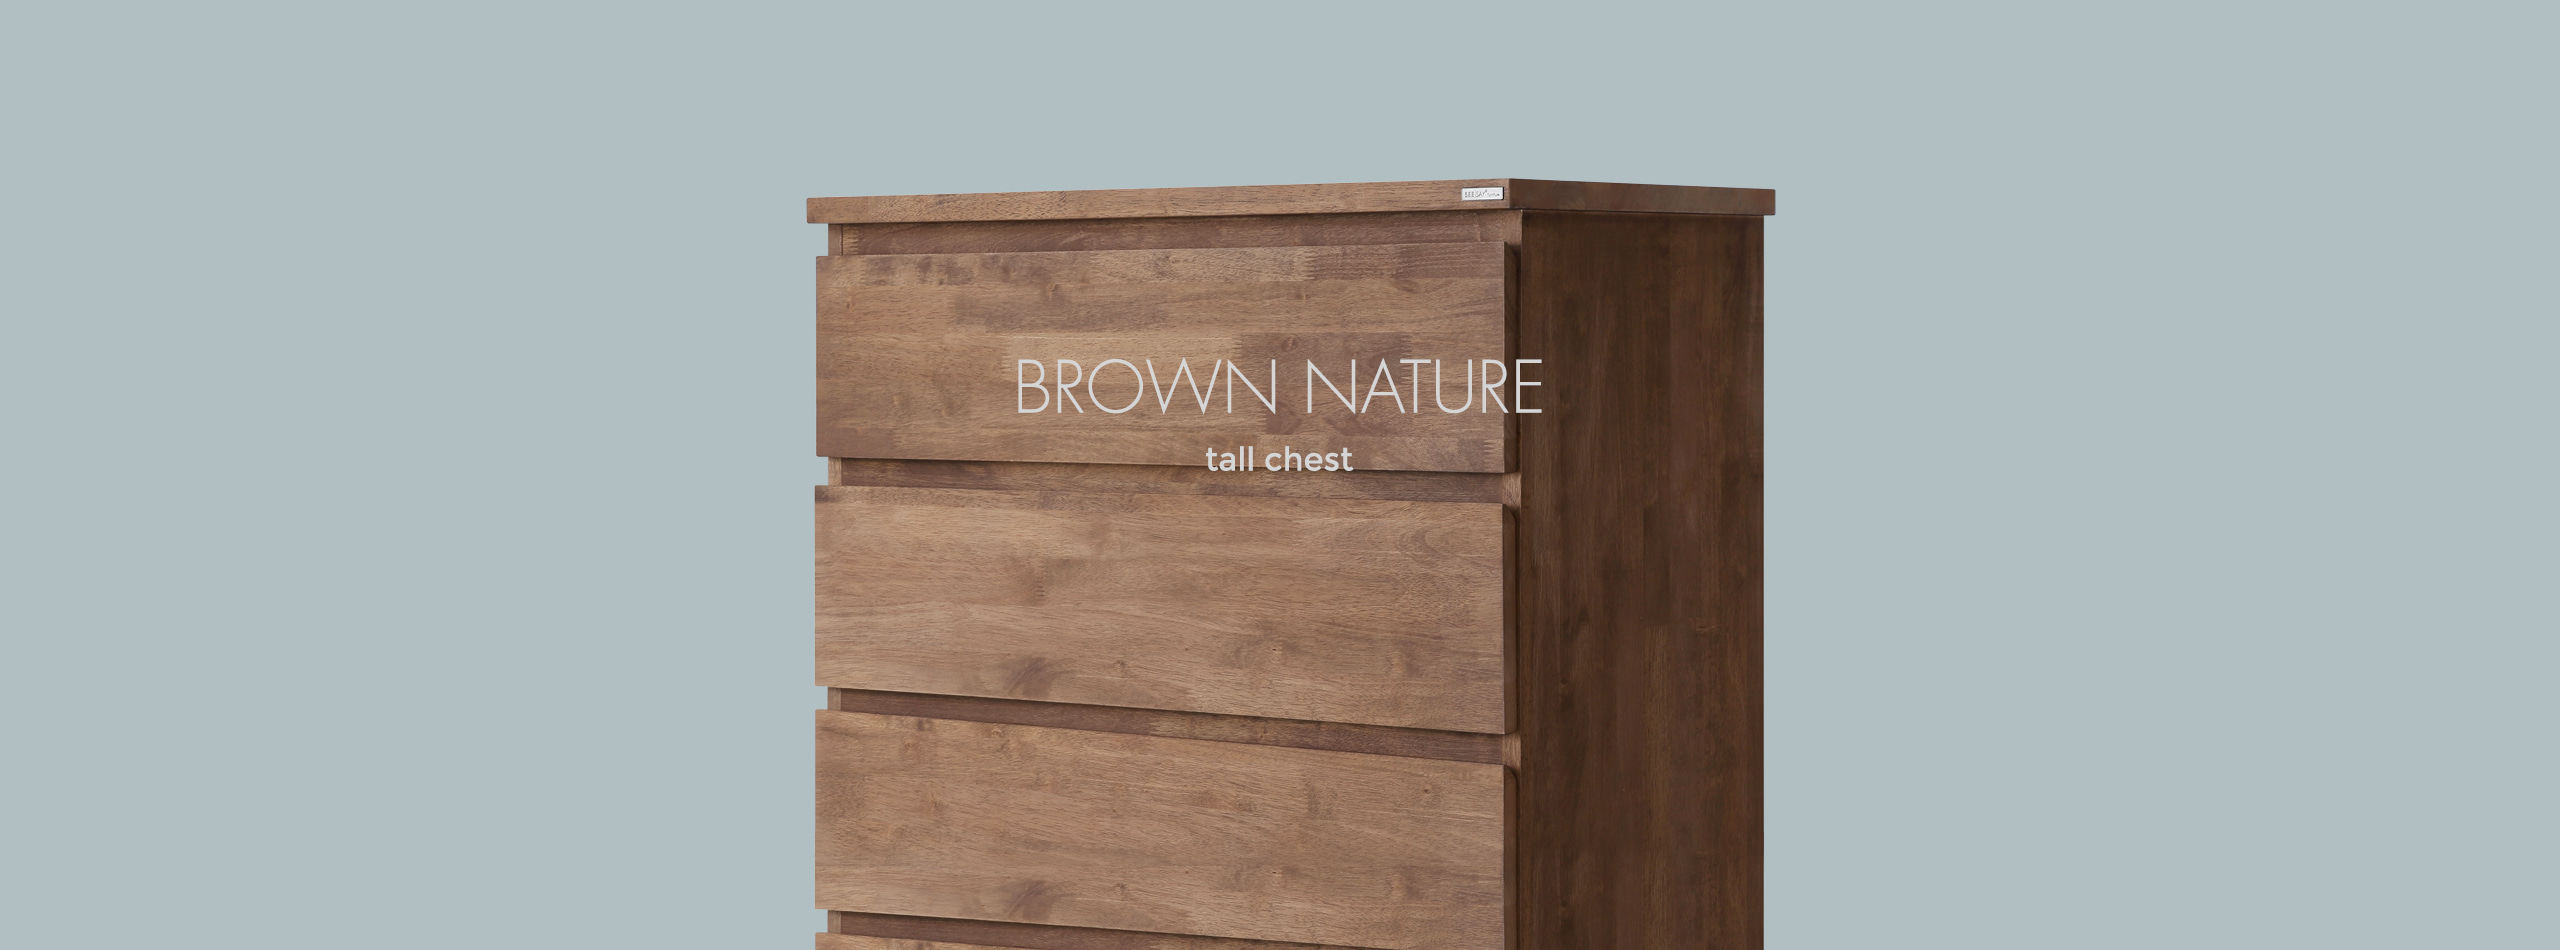 brownnature